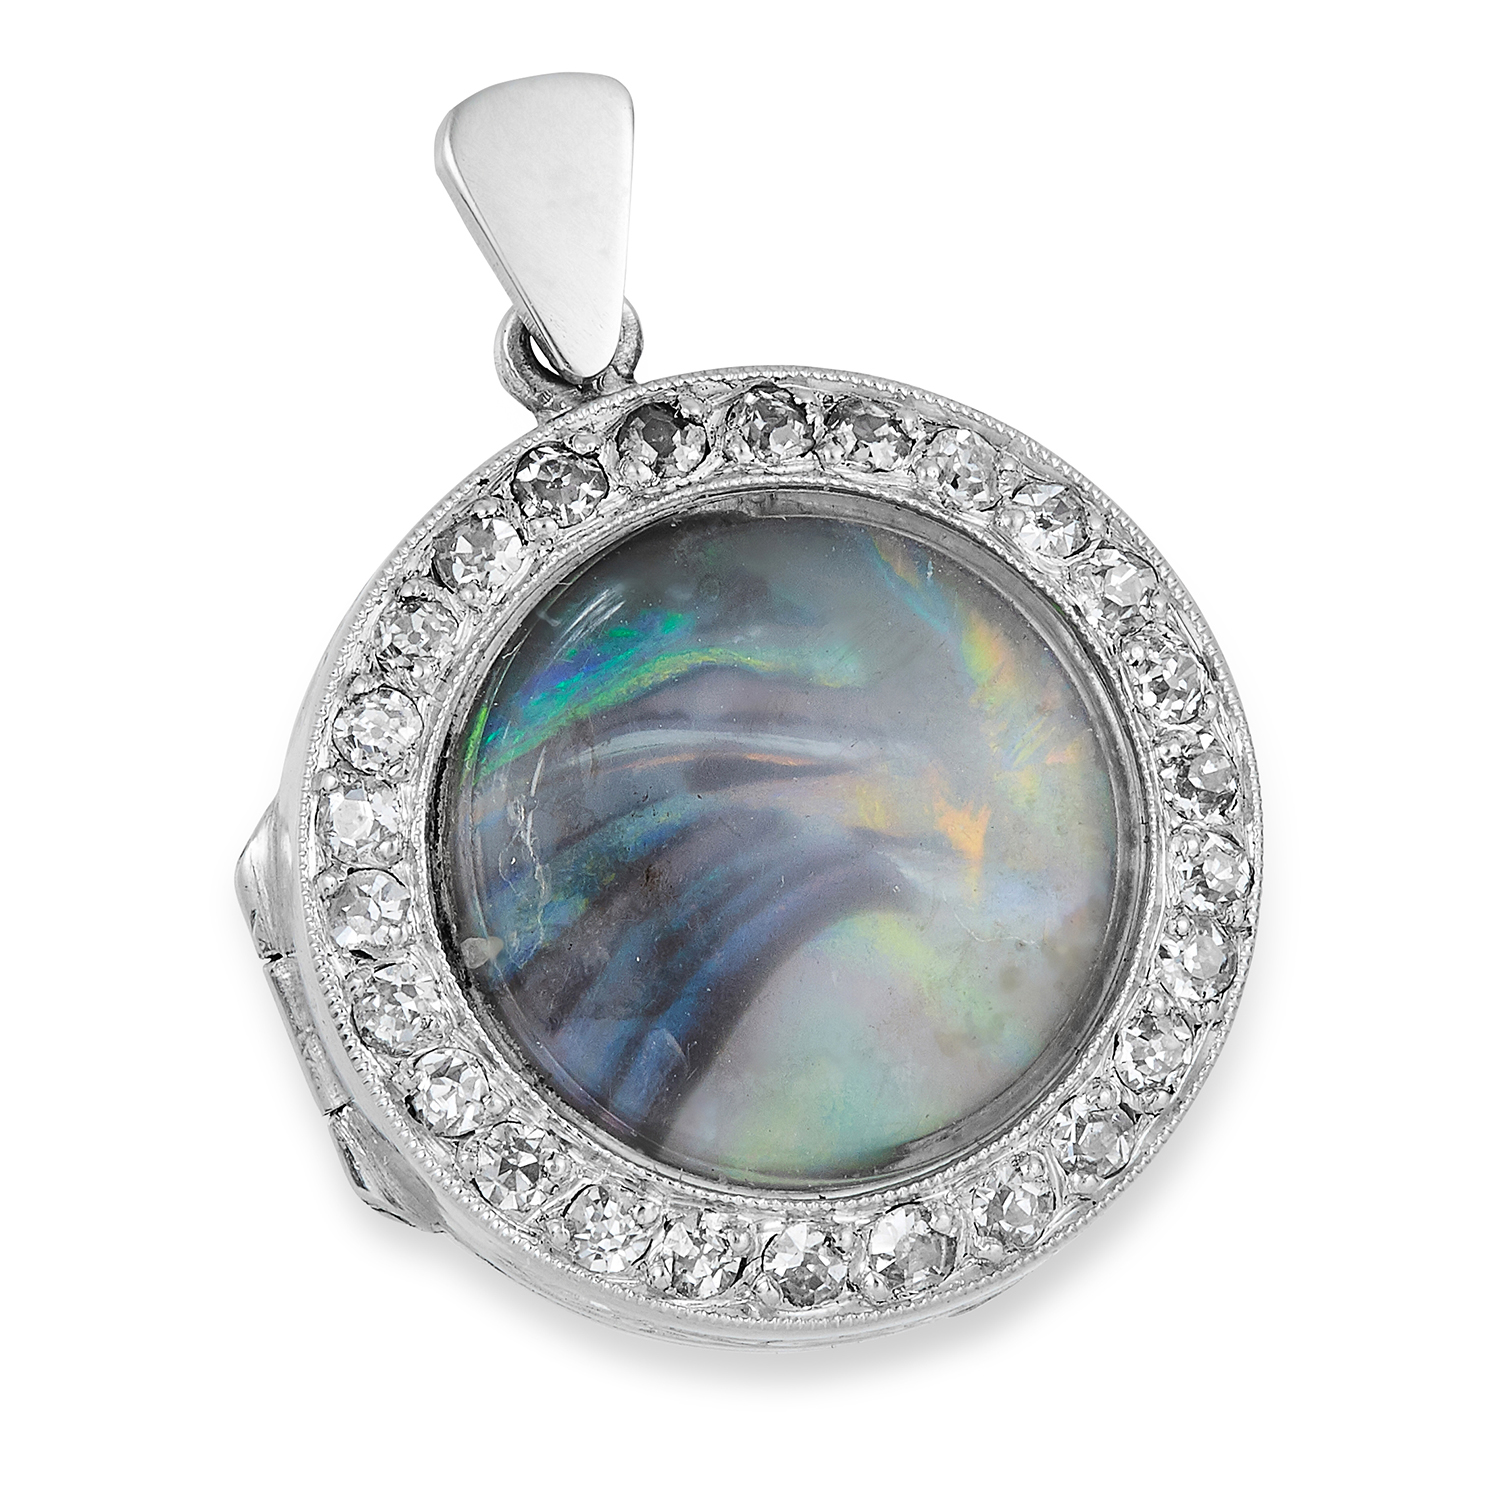 Los 21 - ART DECO OPAL AND DIAMOND PENDANT, set with an opal in a border of round cut